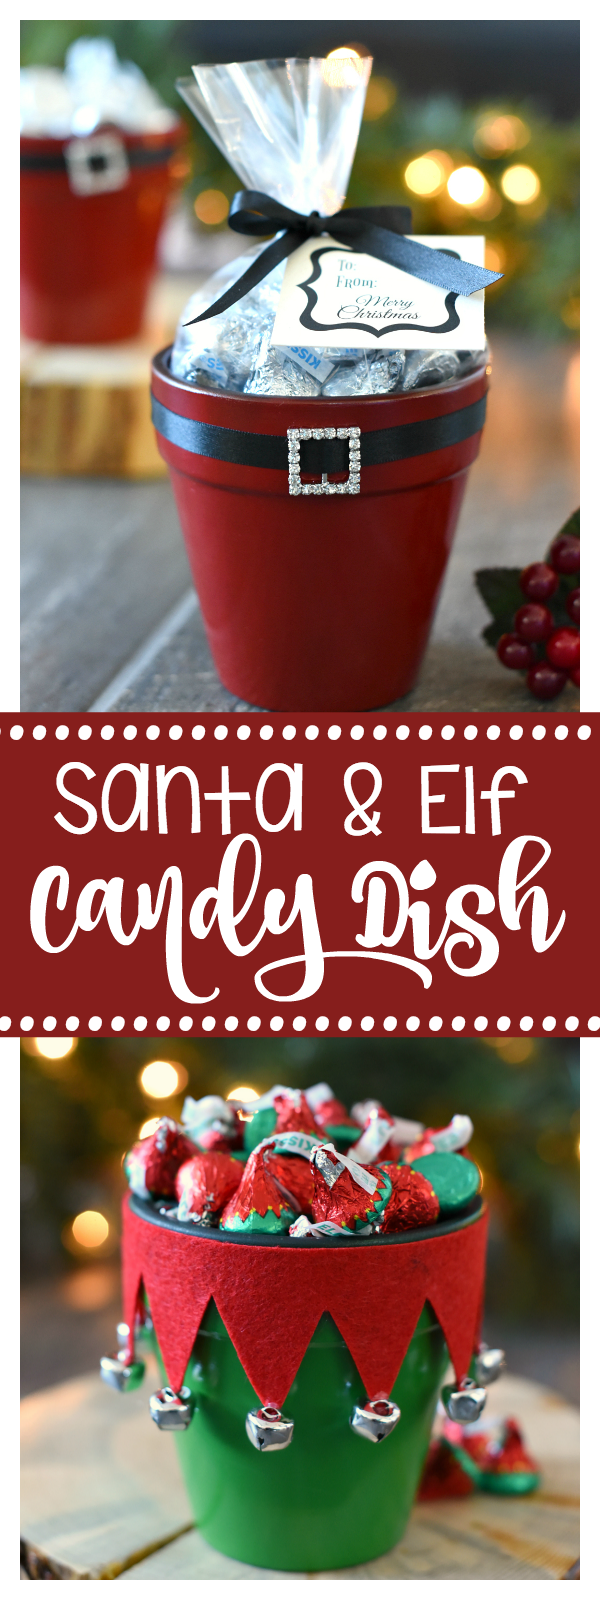 Santa and Elf Candy Dishes for Christmas-Great Gift for Neighbors or Friends!